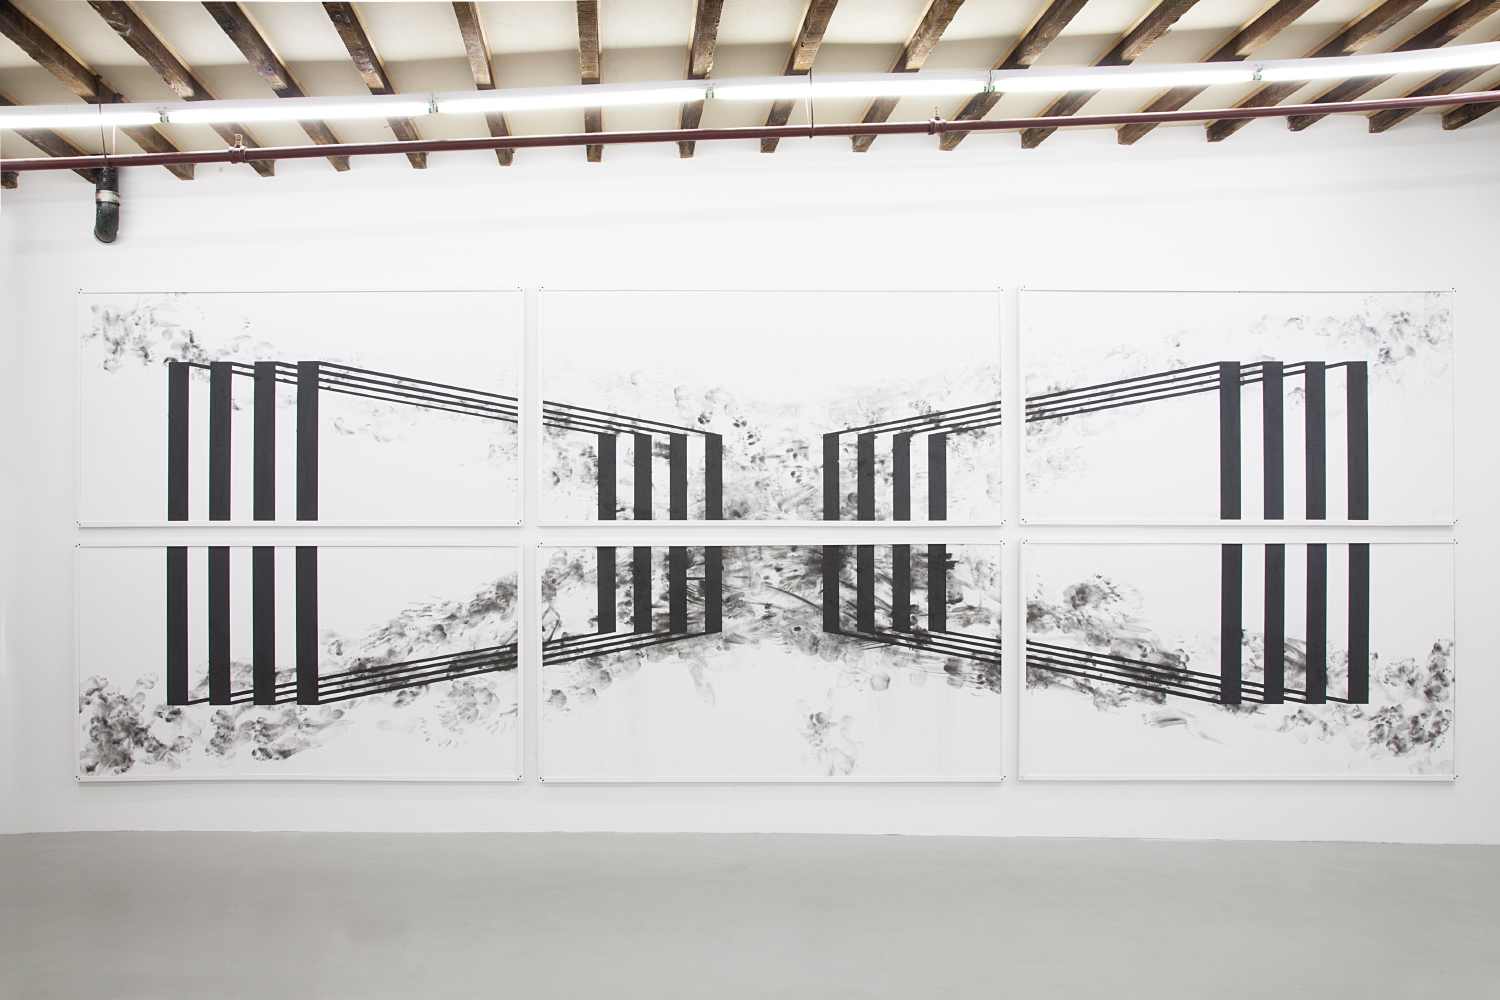 Pulmo , 2015 Sheetrock, Bideford black pigment, and framed floor from live obstacle course 99 x 194 x 1.5 inches